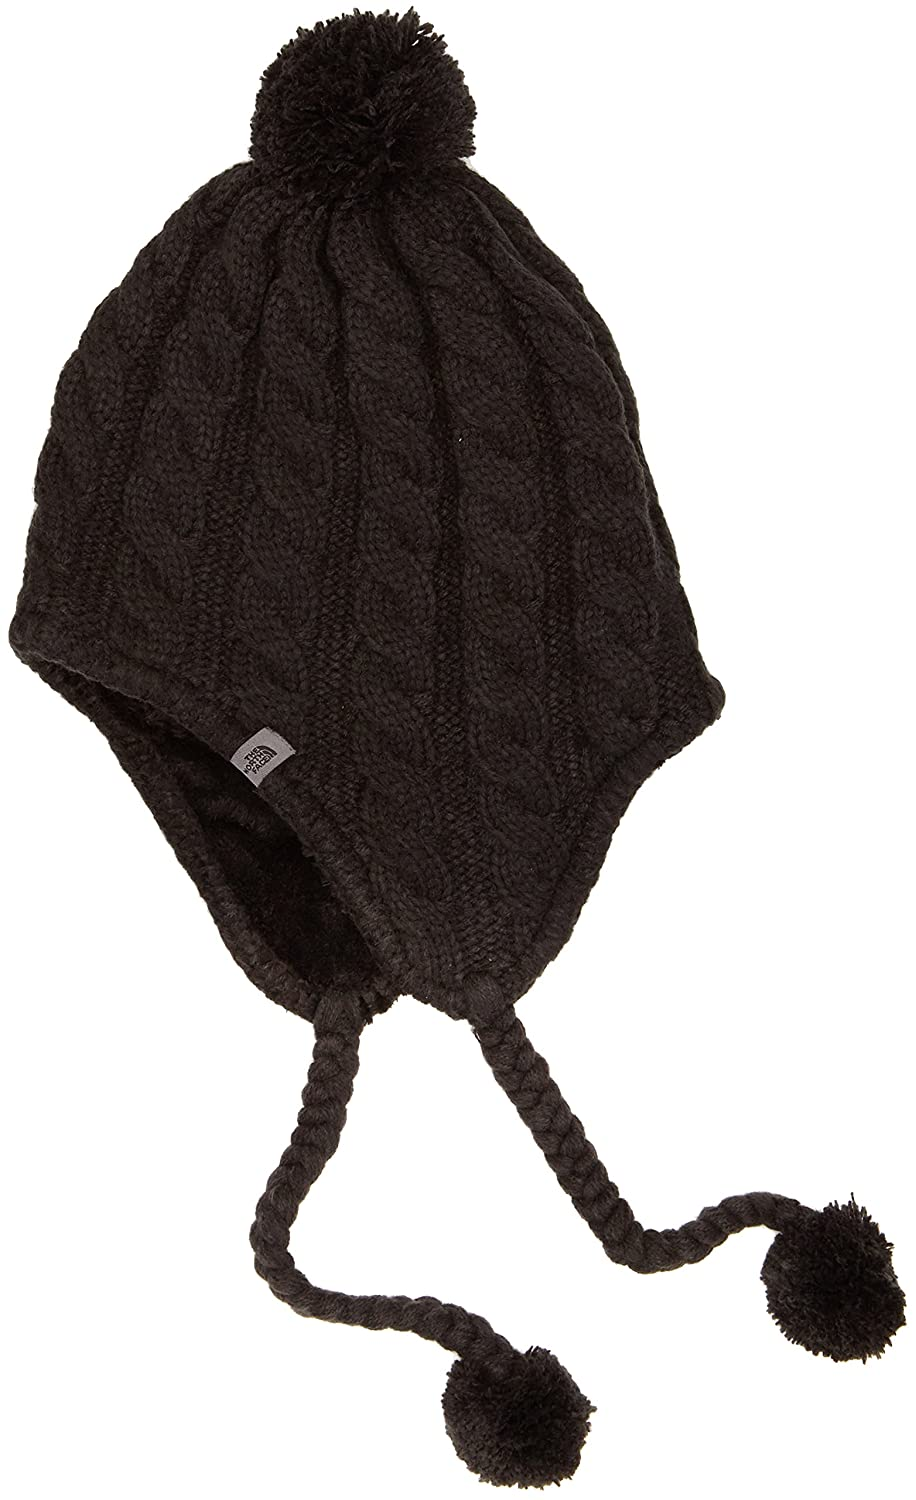 The North Face Fuzzy Ear Flap - Gorro para mujer, color negro, talla única